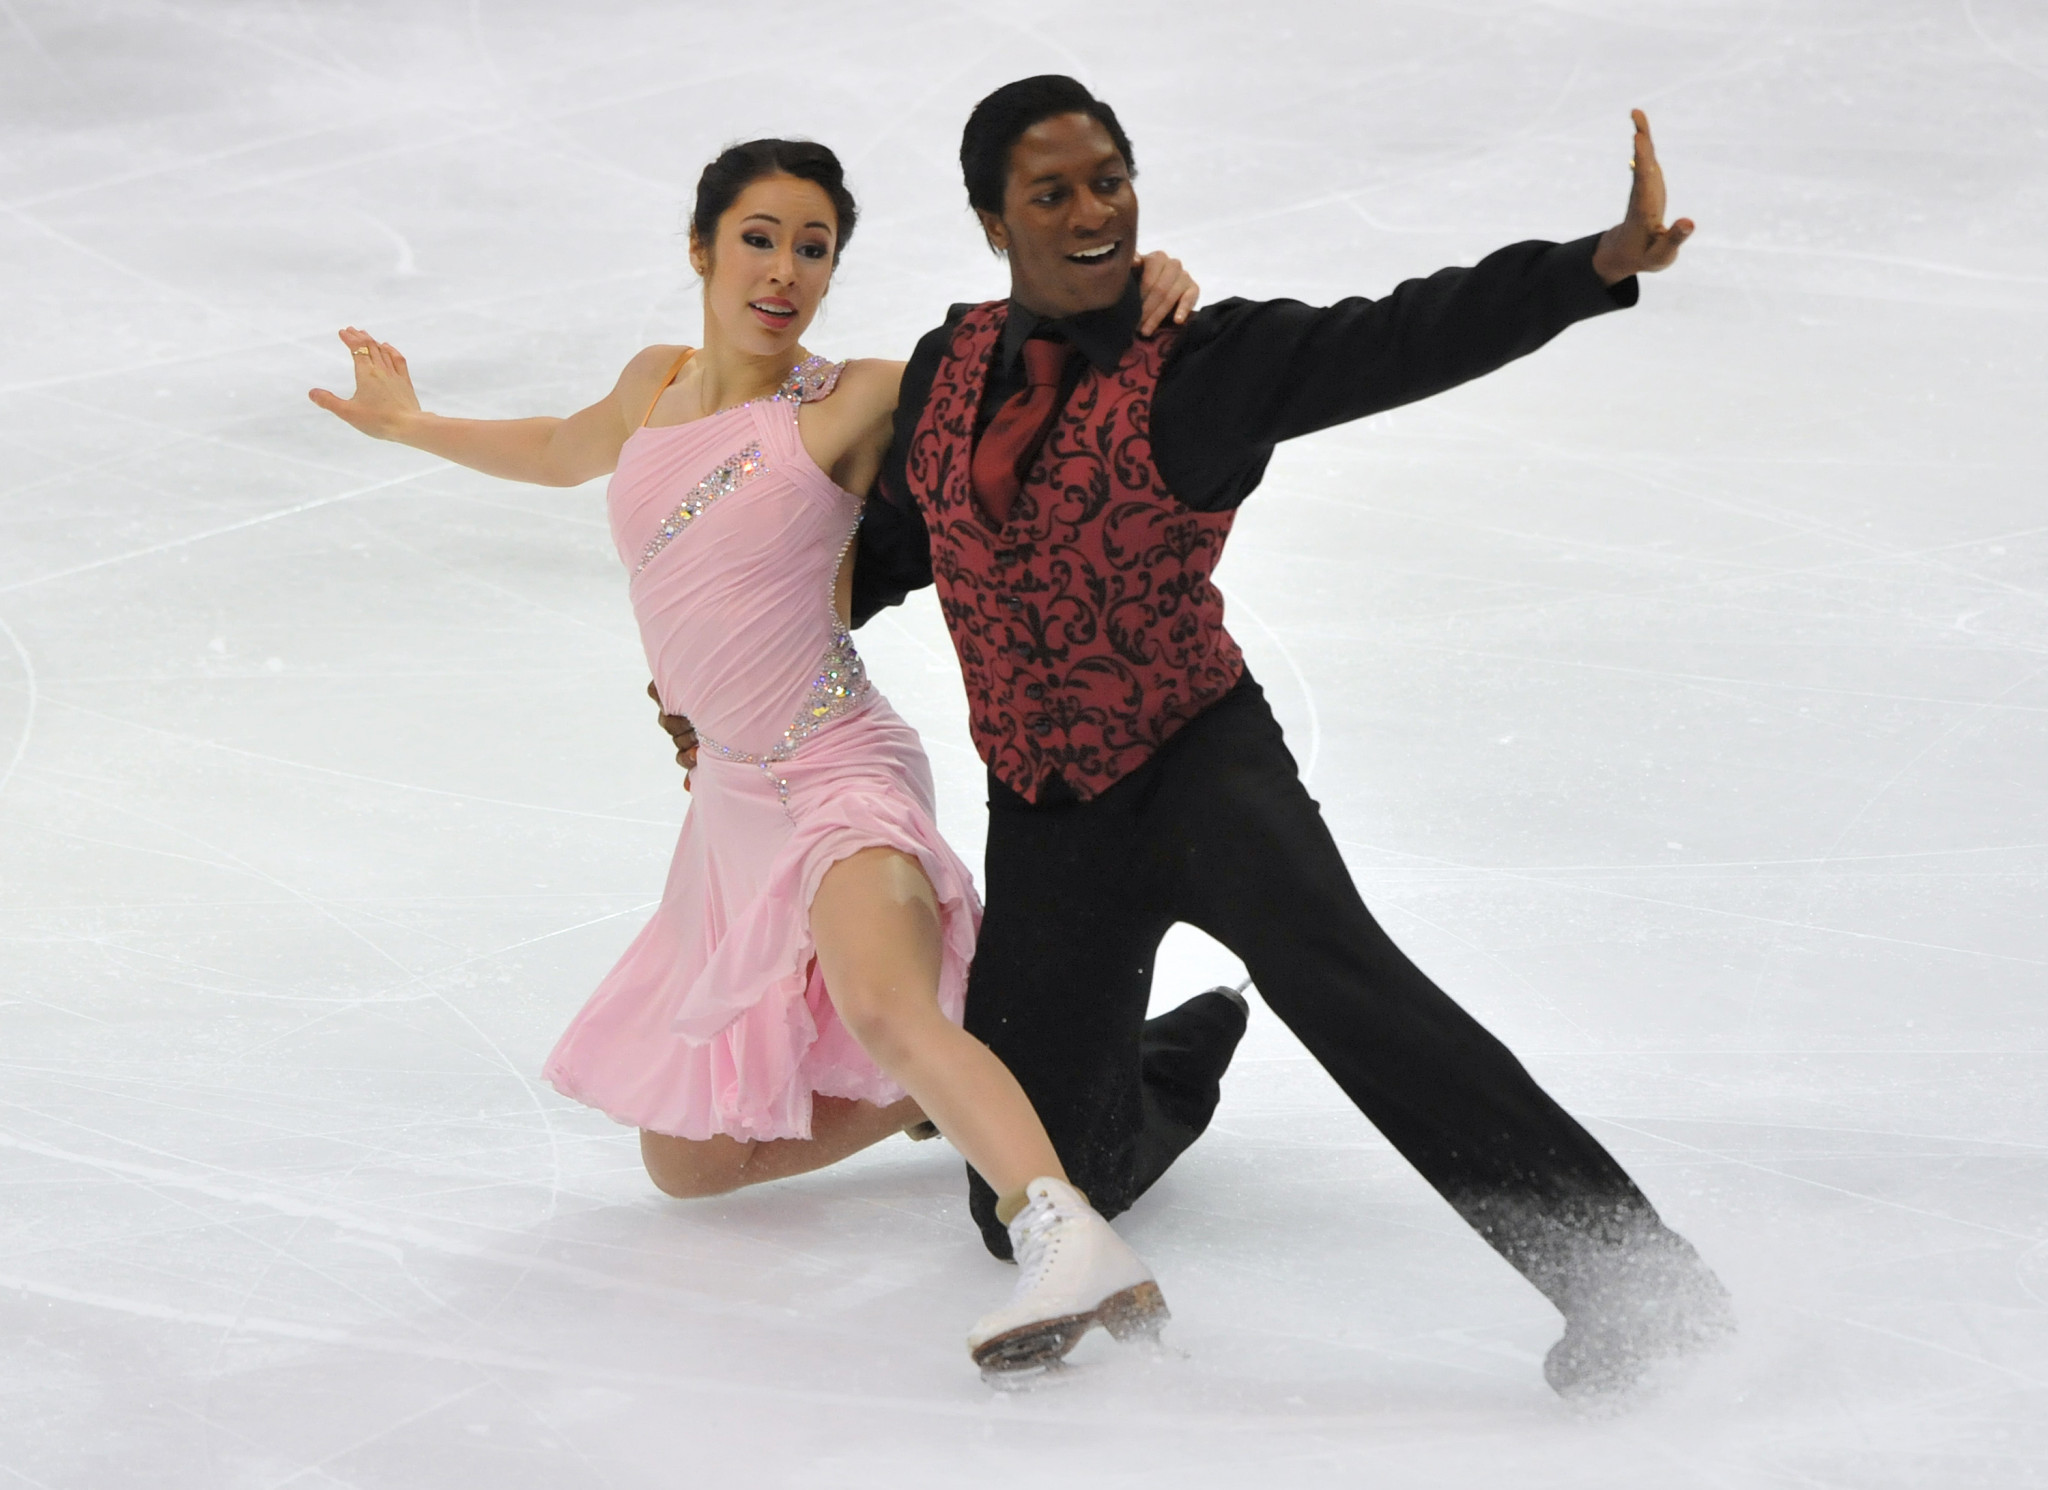 Asher Hill has accused Skate Canada of hypocrisy regarding the governing body's statement on racial equality ©Getty Images